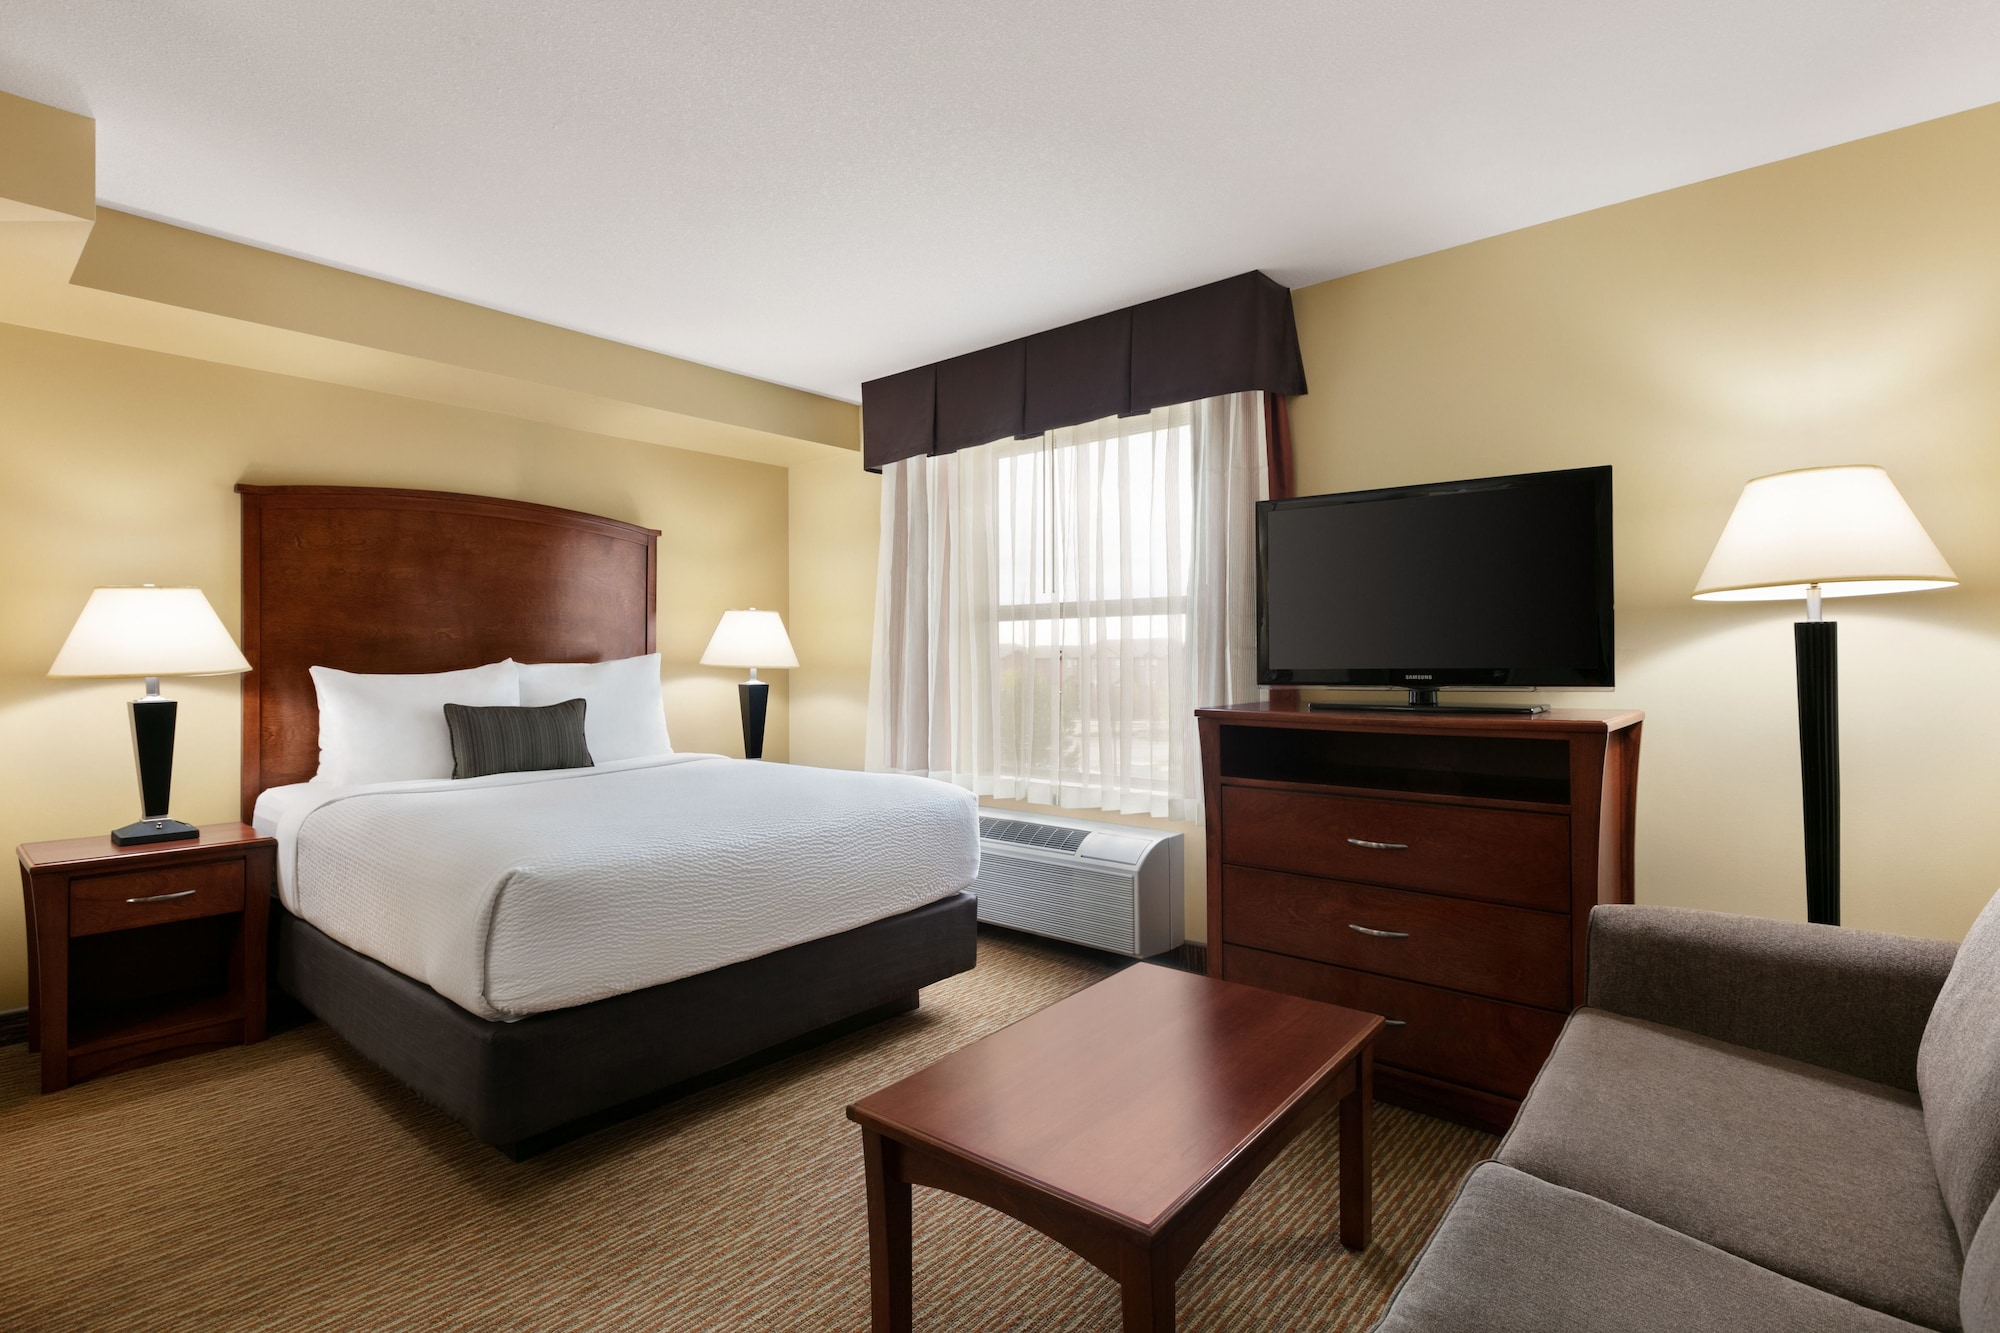 Days Inn & Suites by Wyndham Sherwood Park Edmonton, Division No. 11